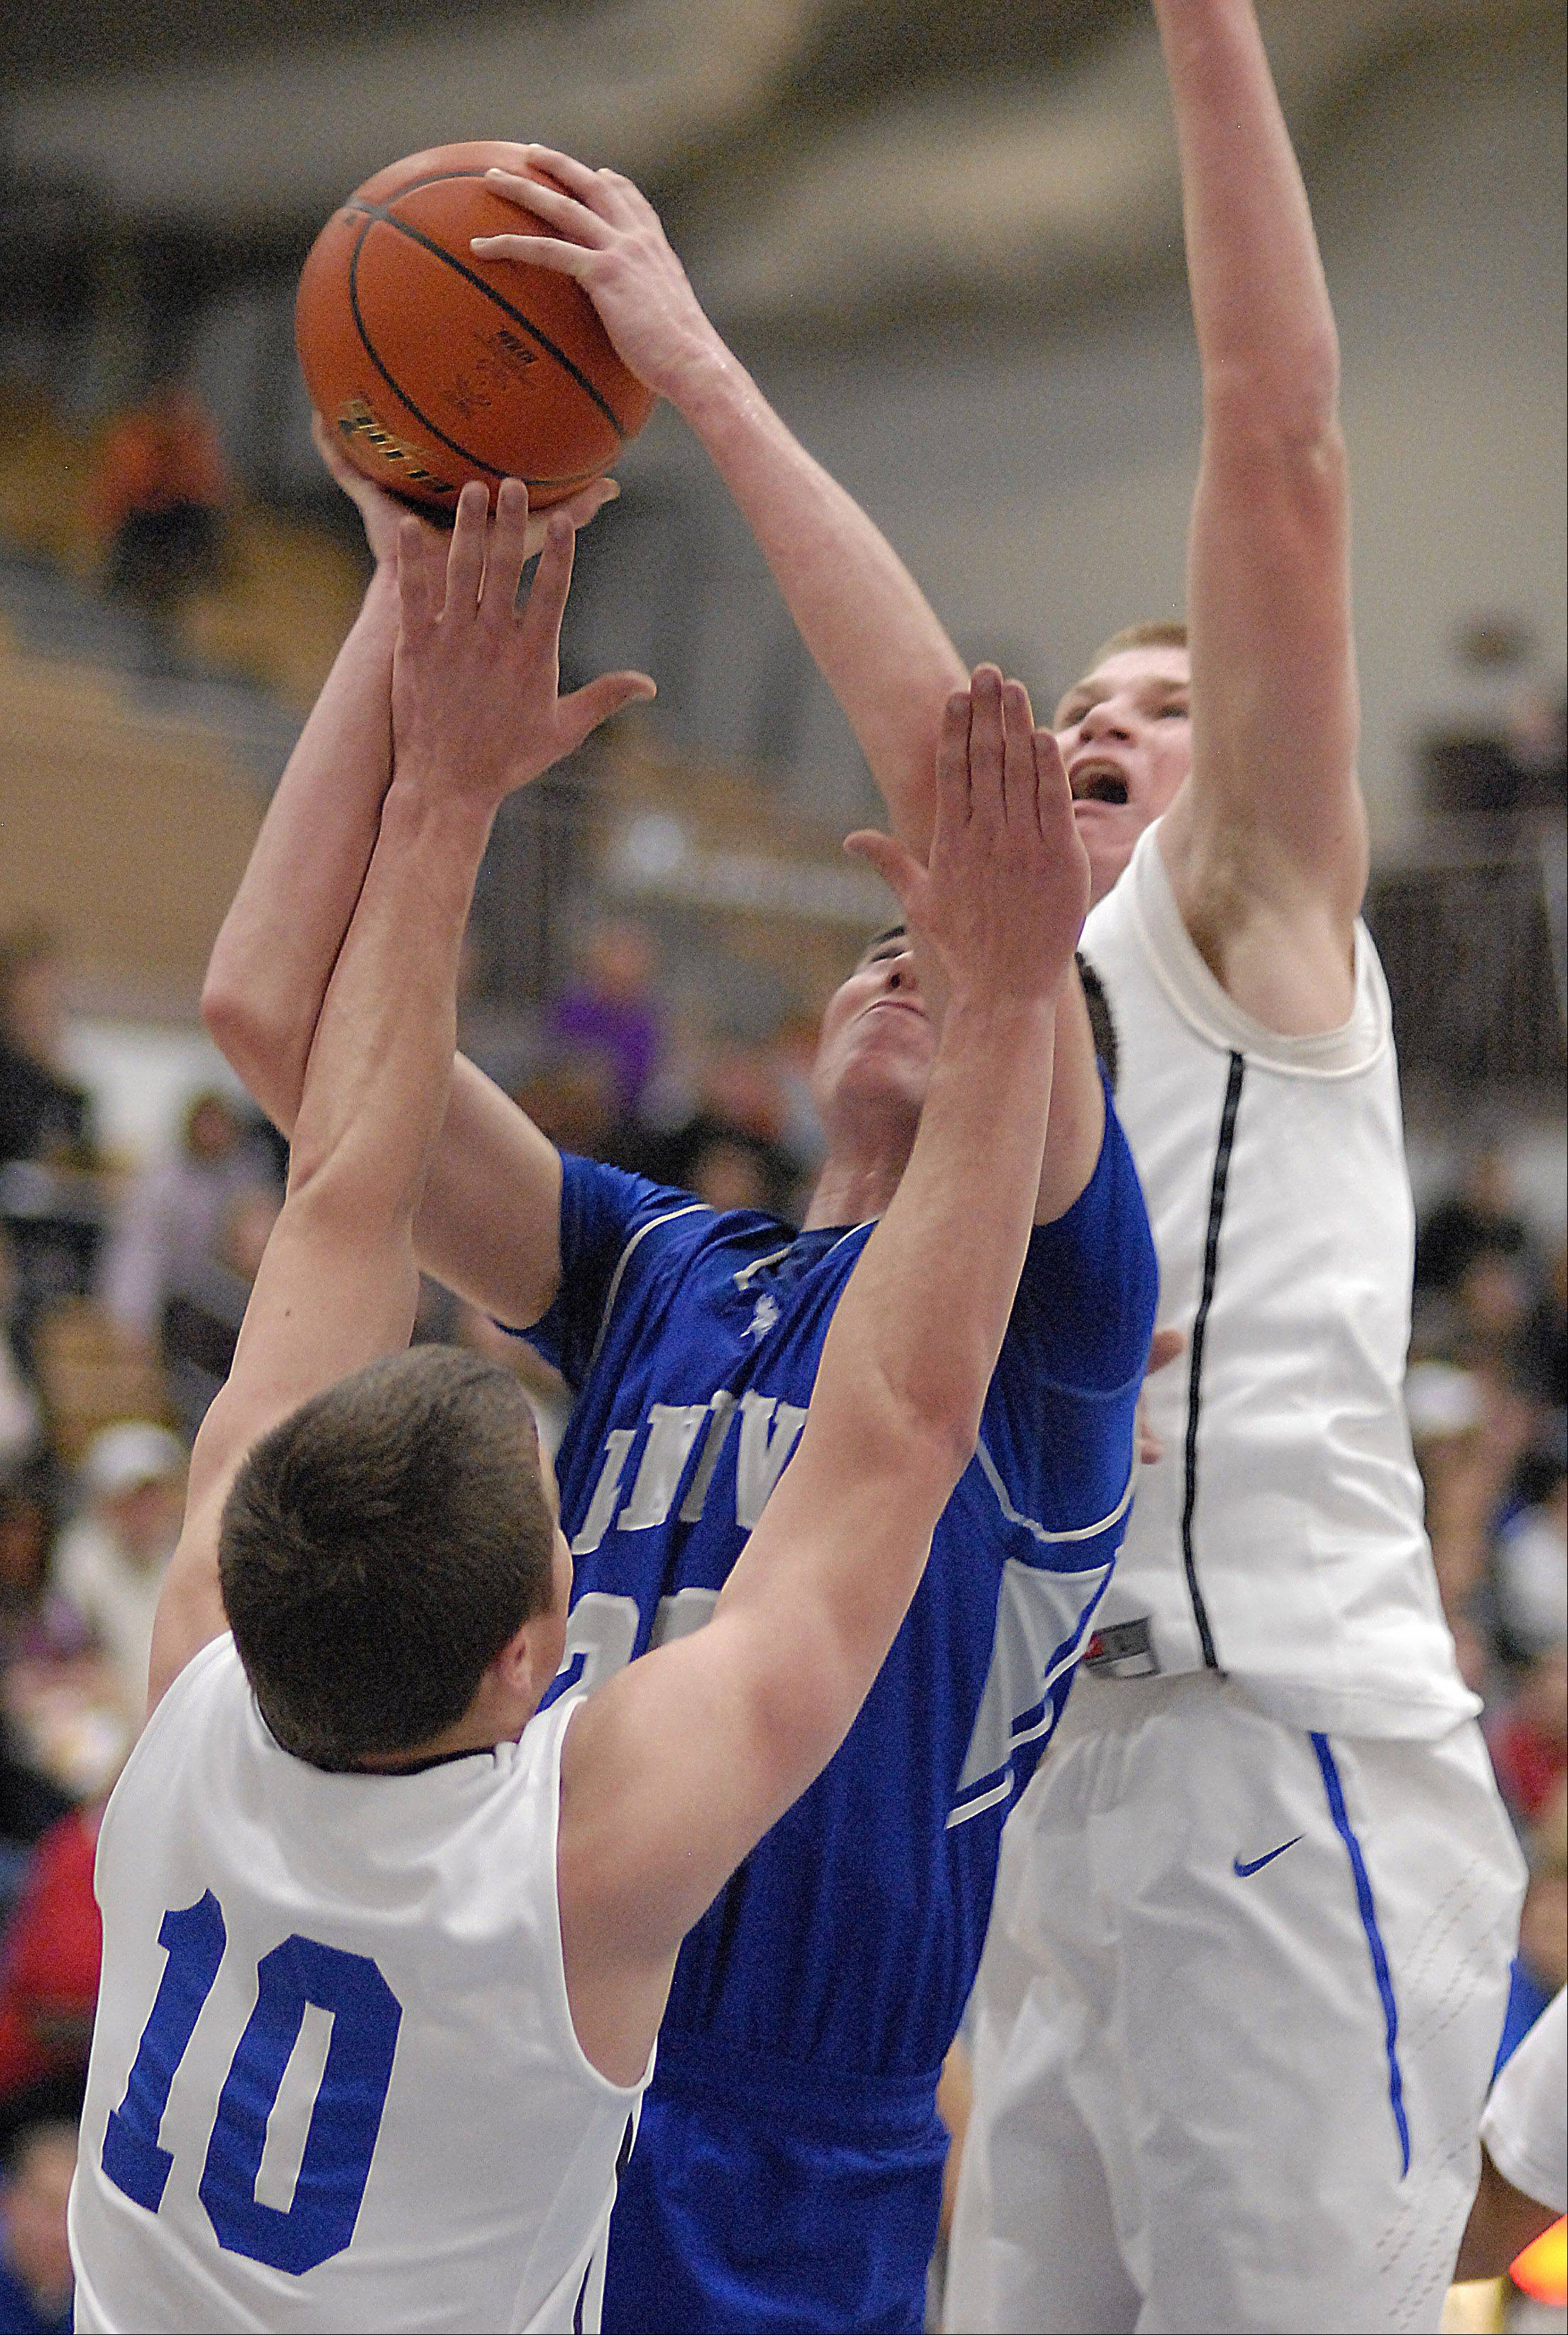 Geneva's Nate Navigato is swarmed under the hoop by St. Charles North's Ryan Thomas and Justin Stanko in the third quarter .